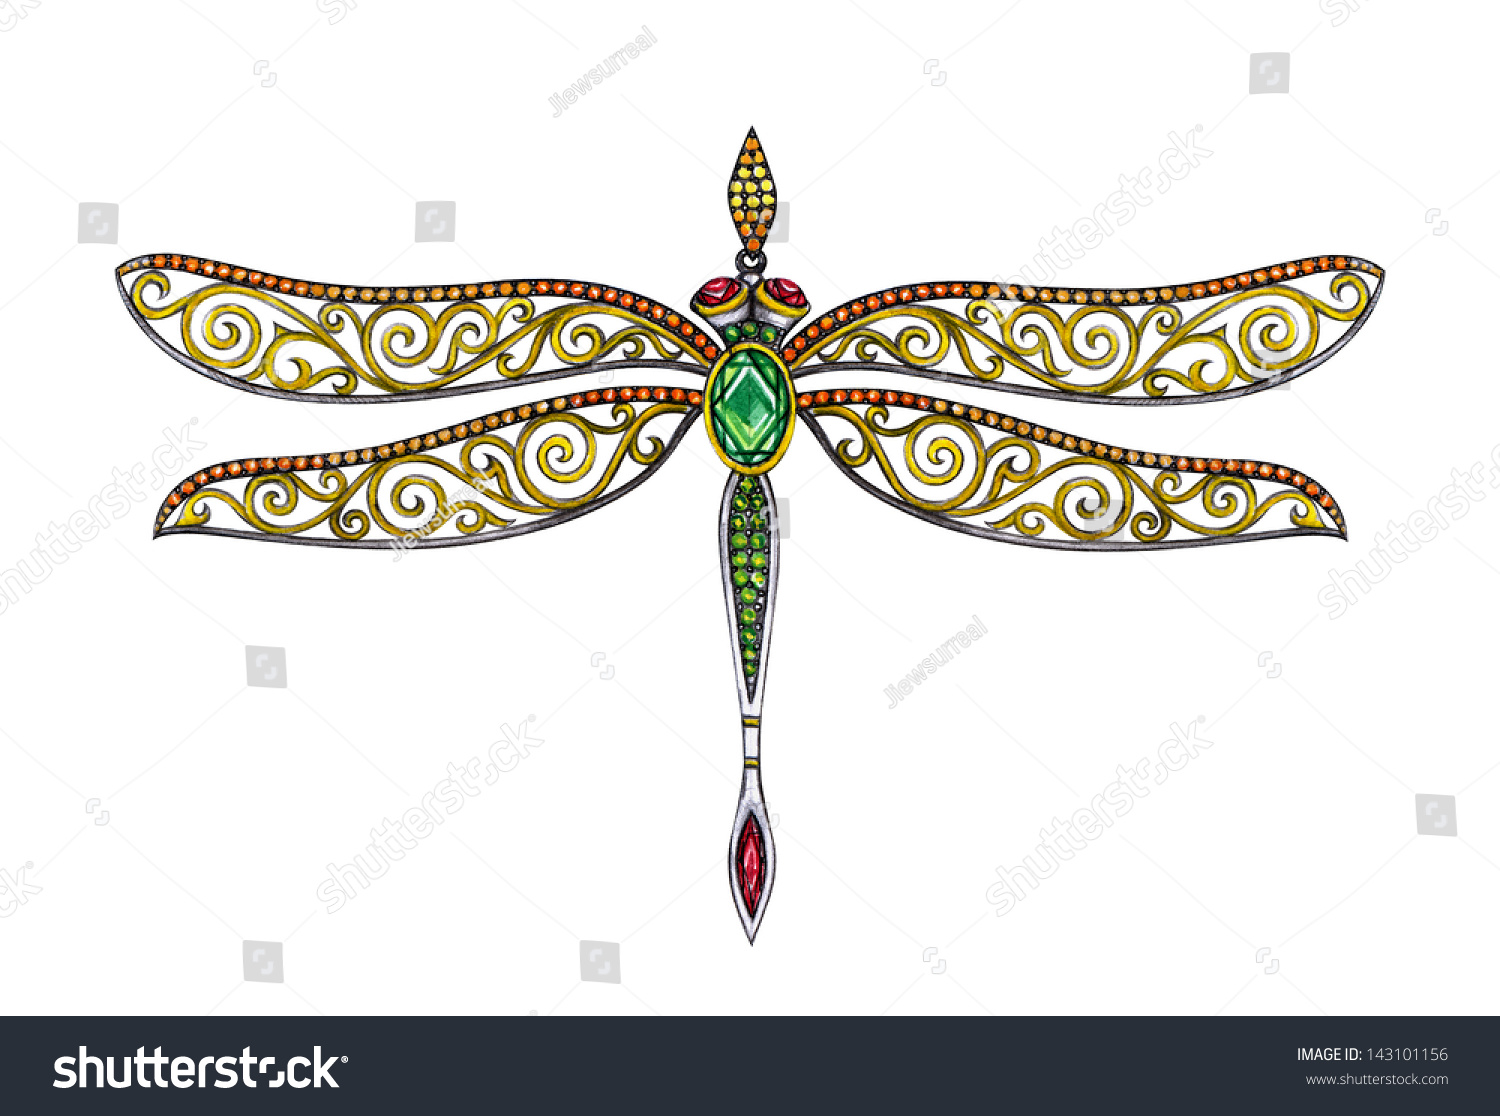 Jewelry Dragonfly Vintagehand Drawing Painting Pendant